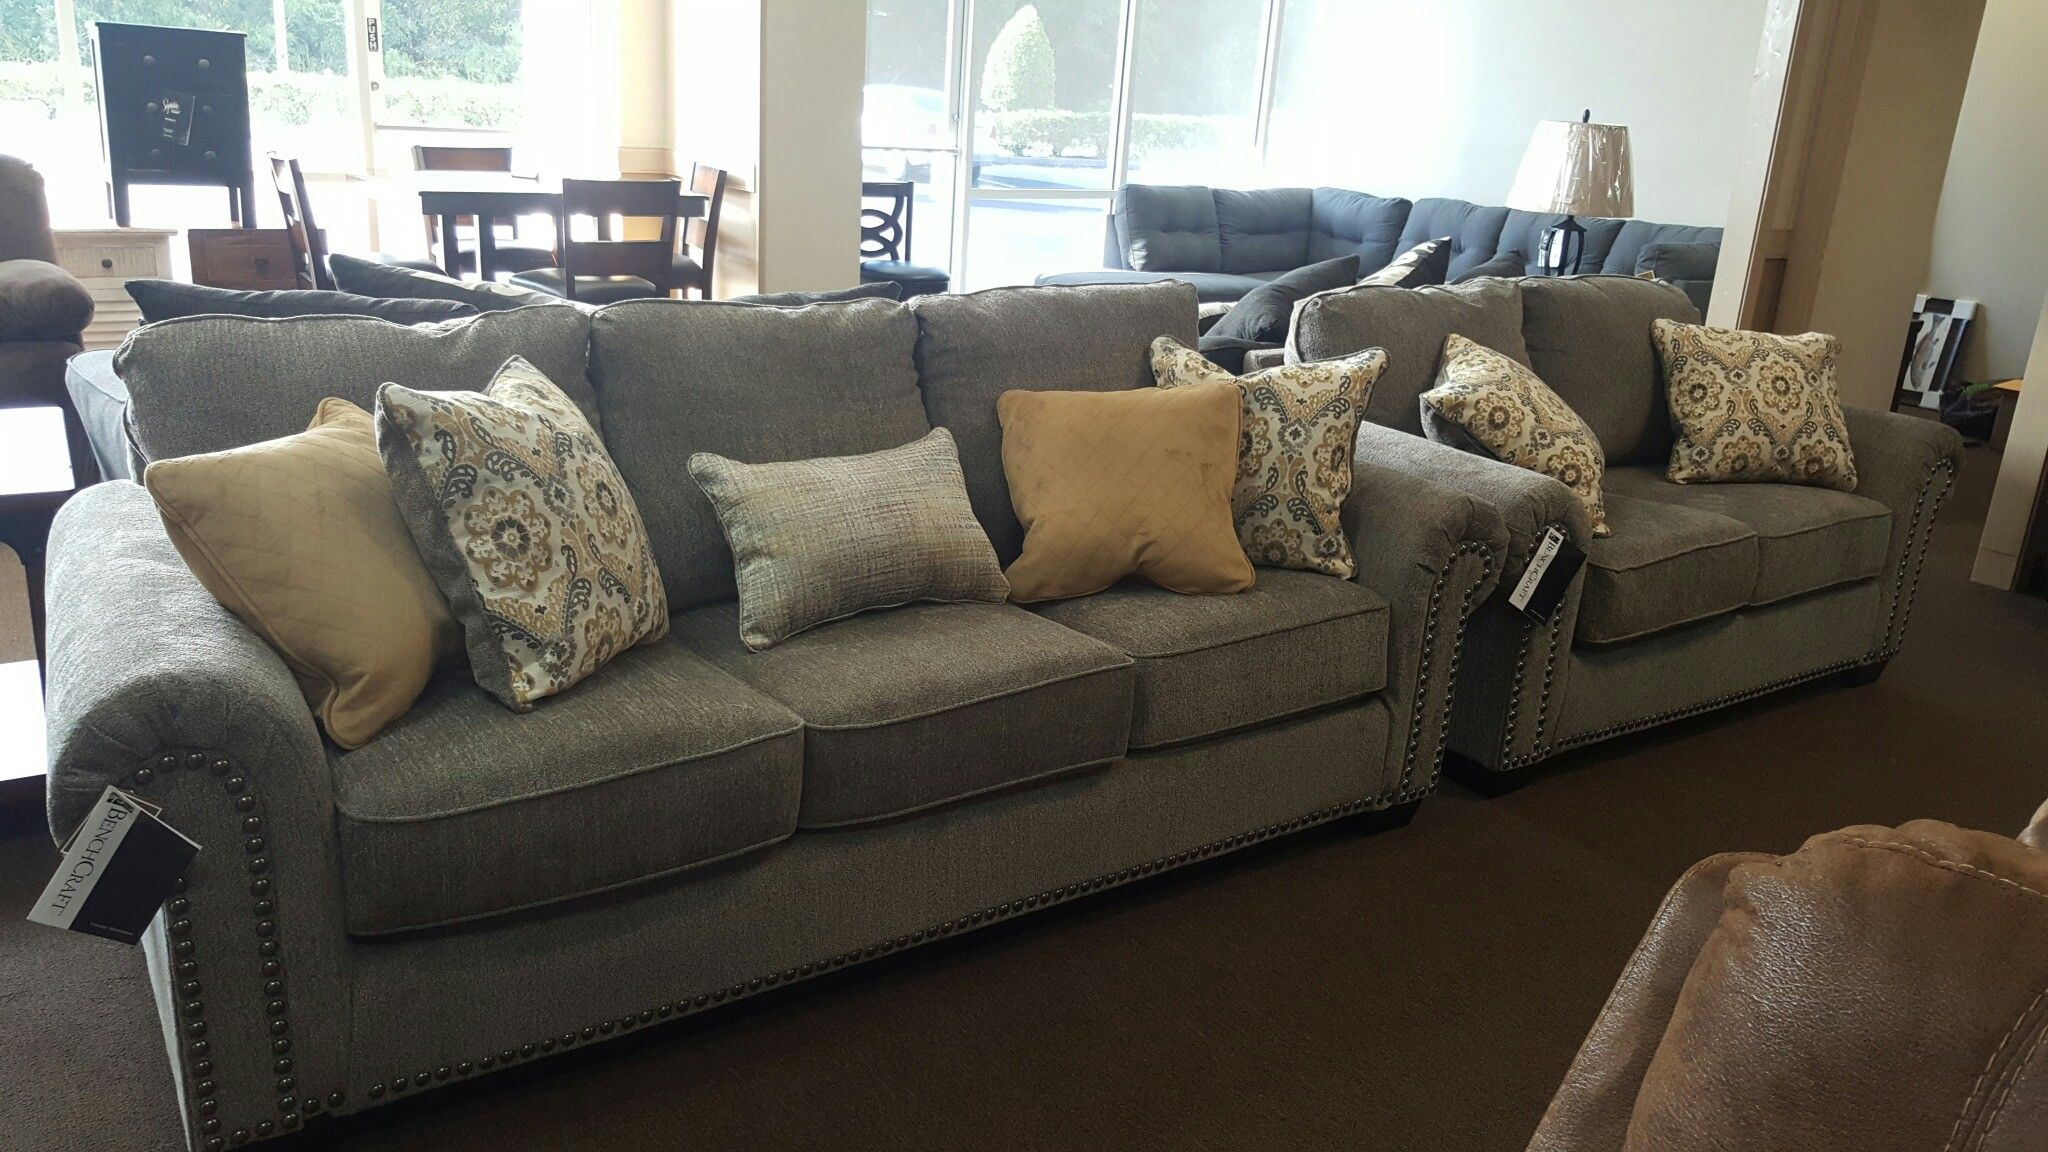 Quality Bedding And Furniture In Orange Park Has A Great Selection Of Quality  Furniture At Amazing